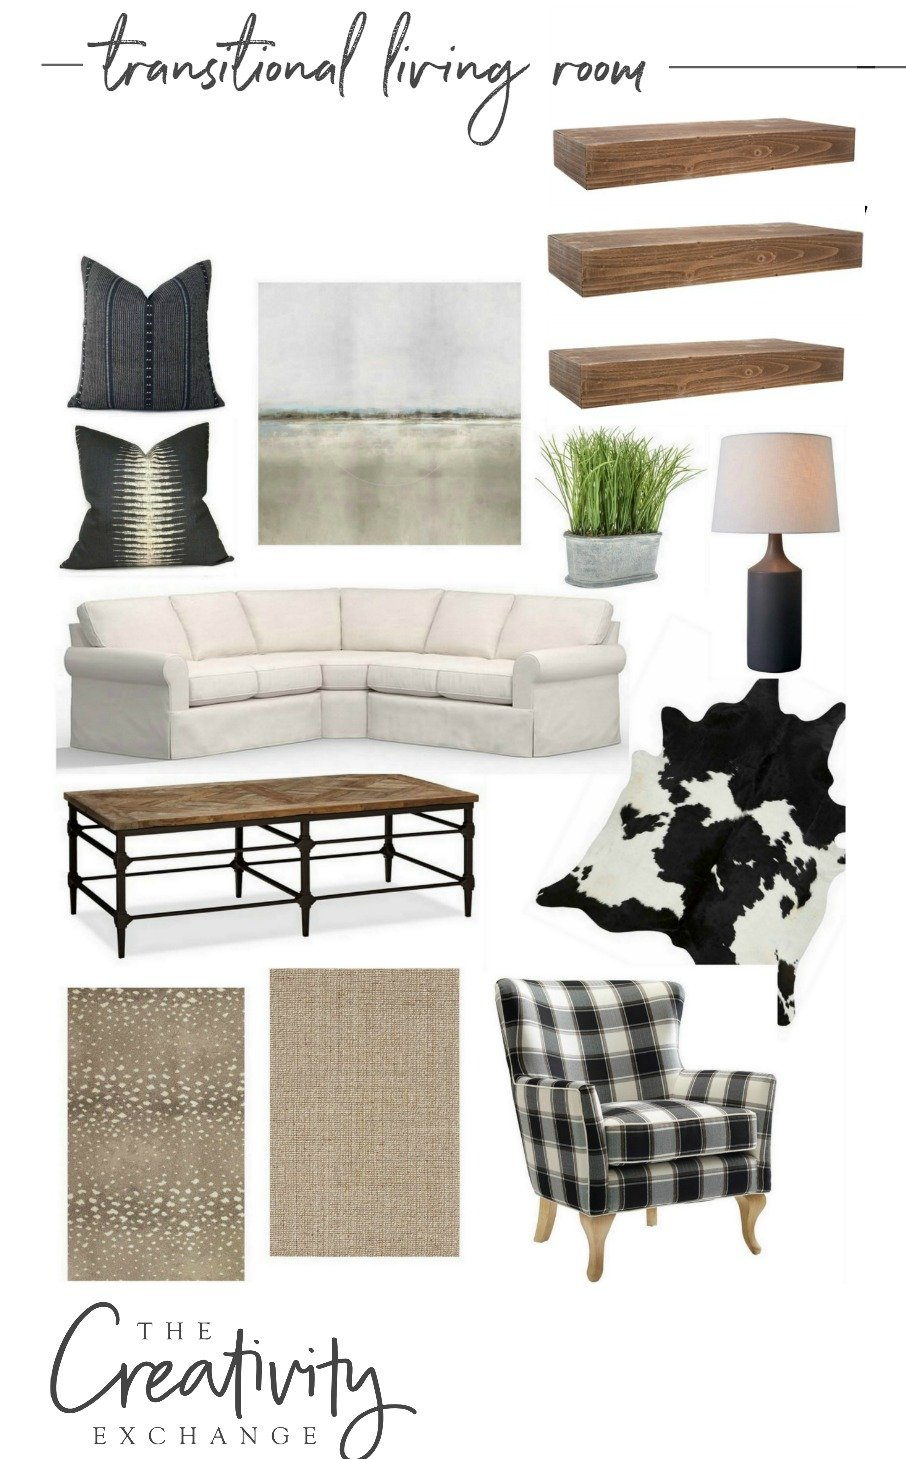 Transitional living room design mood board